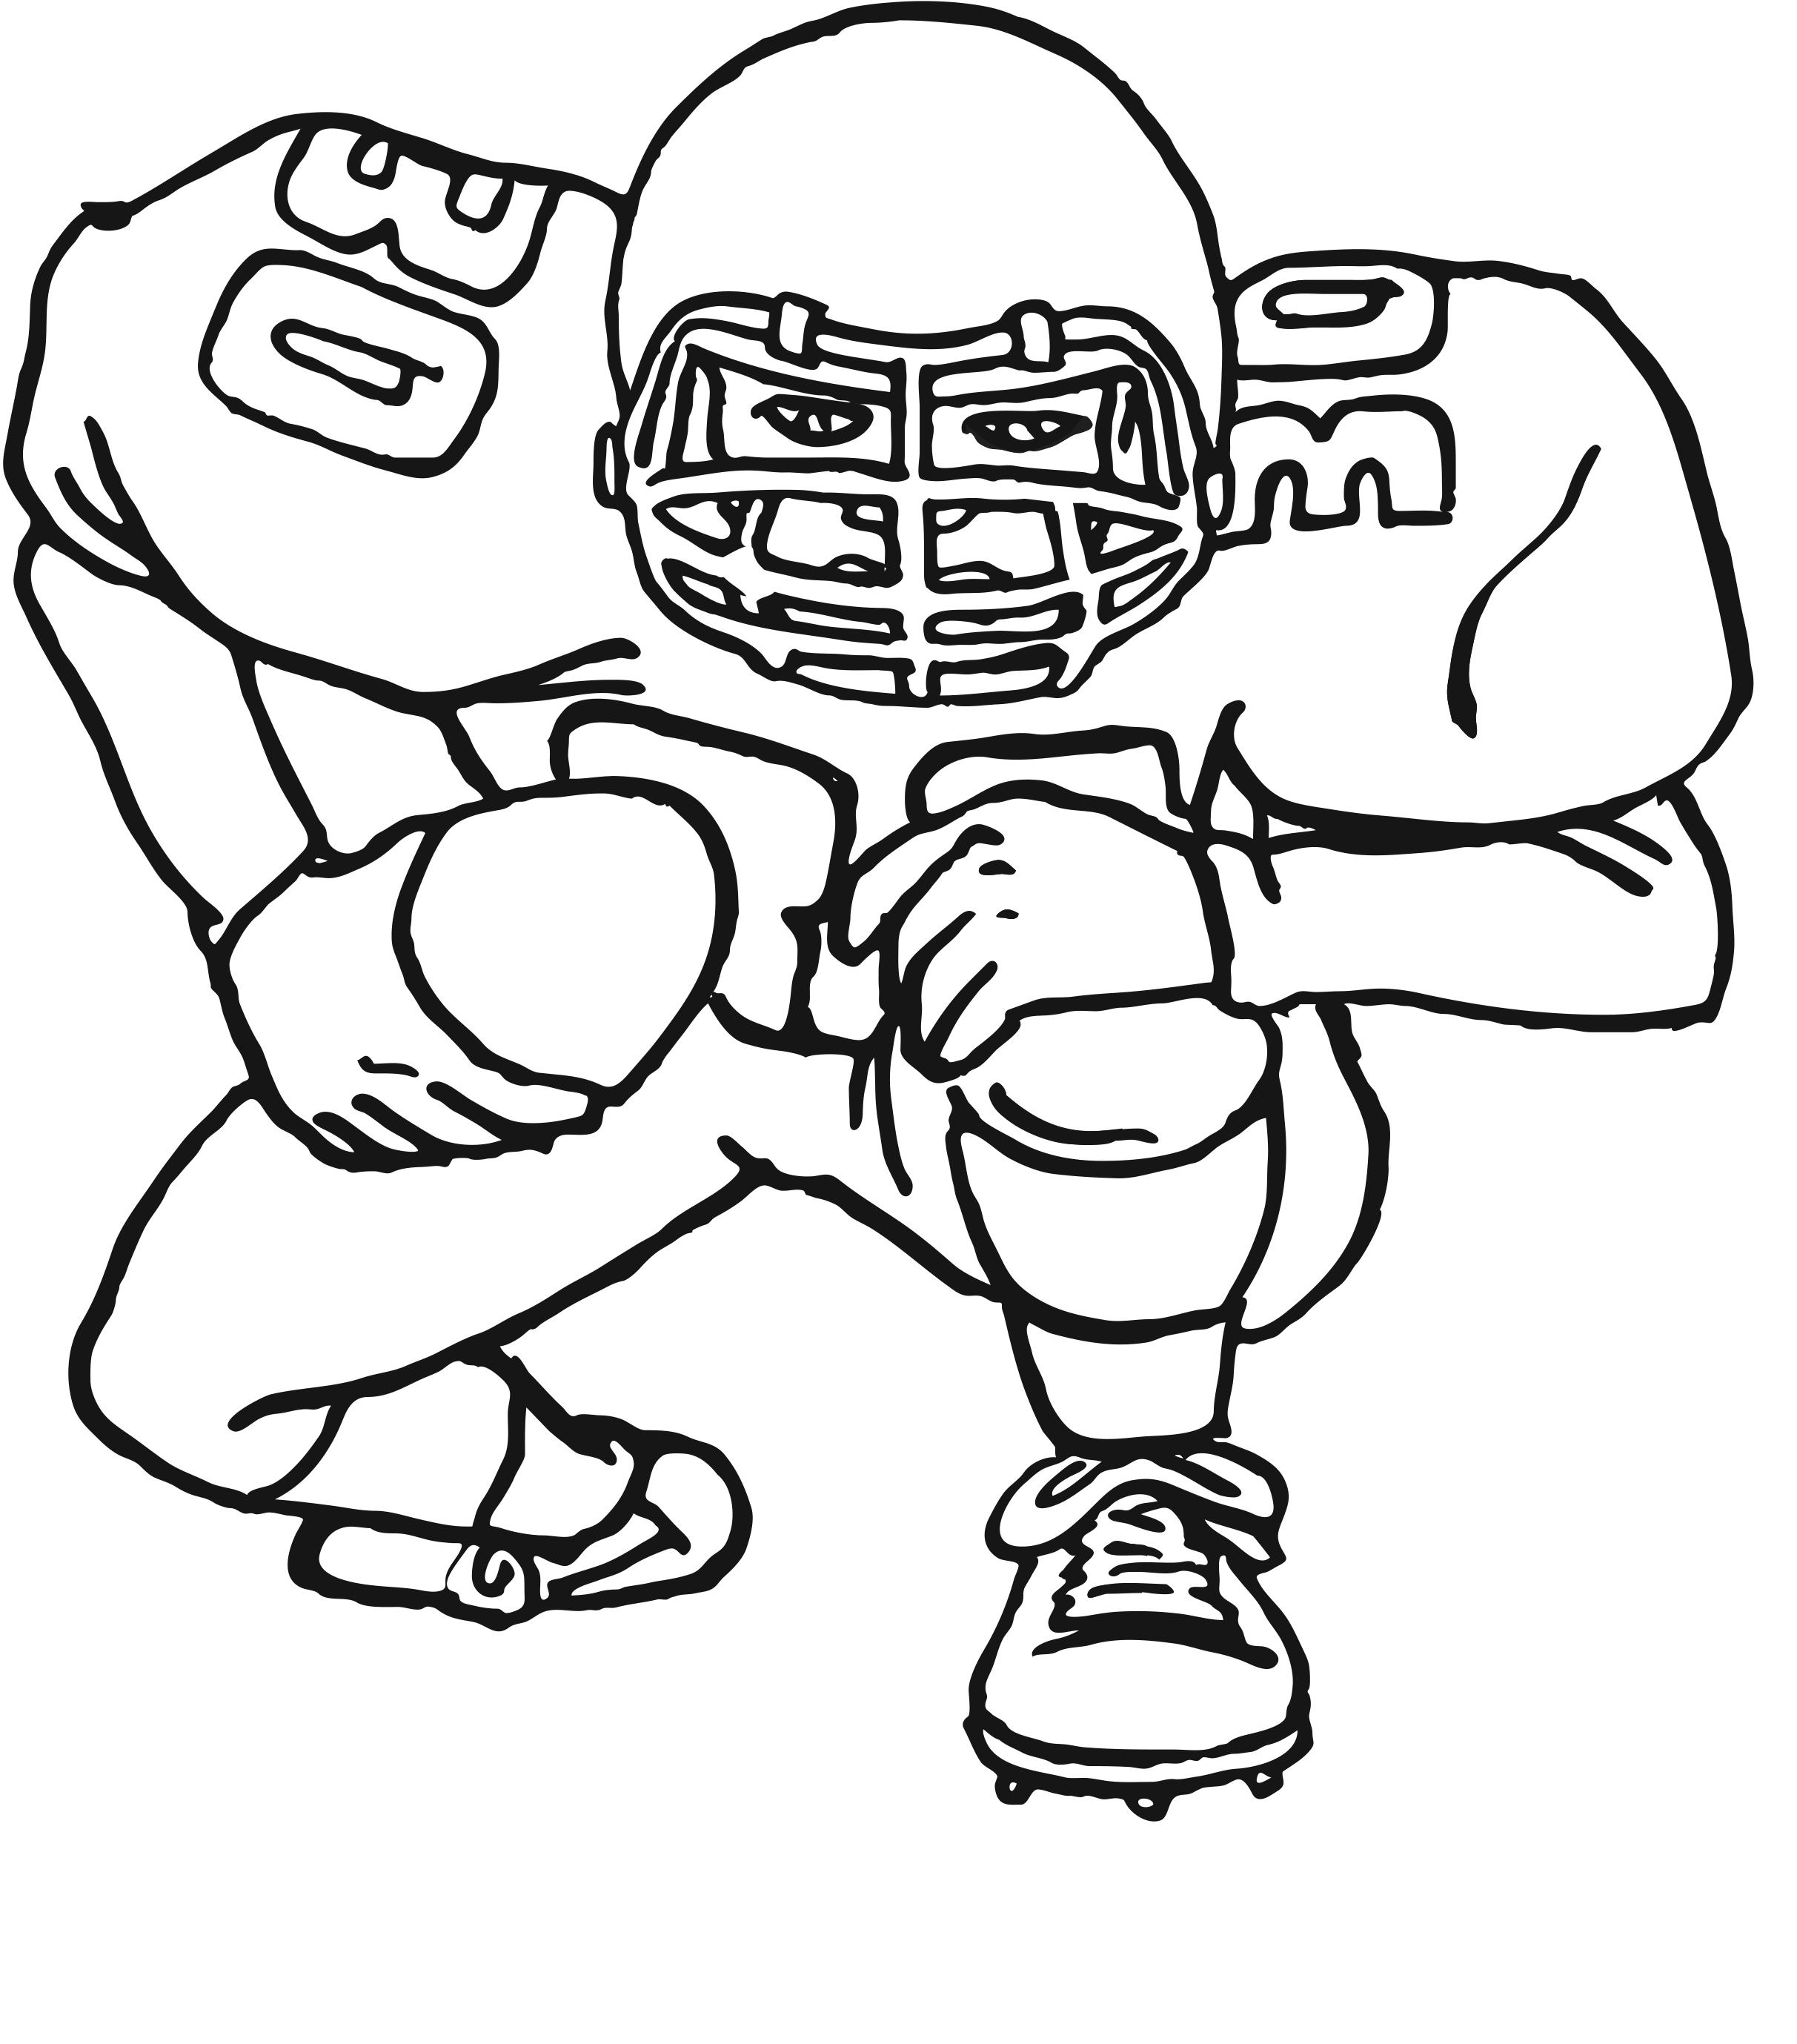 Free Printable Football Coloring Pages For Kids Best Coloring Pages For Kids